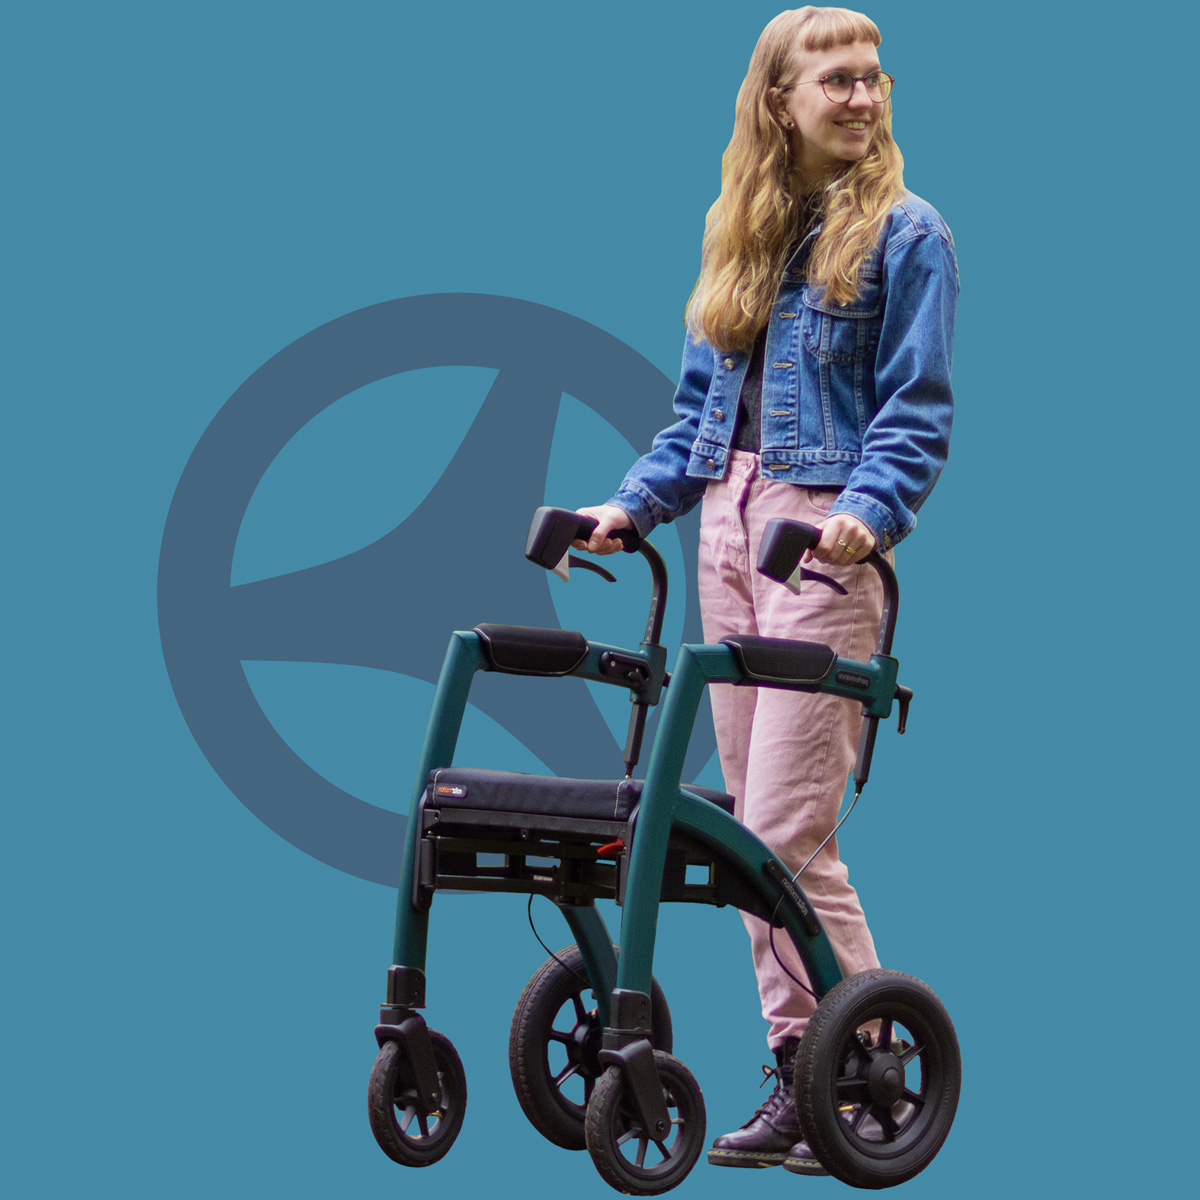 Woman pushing a green modern rollator with air tires